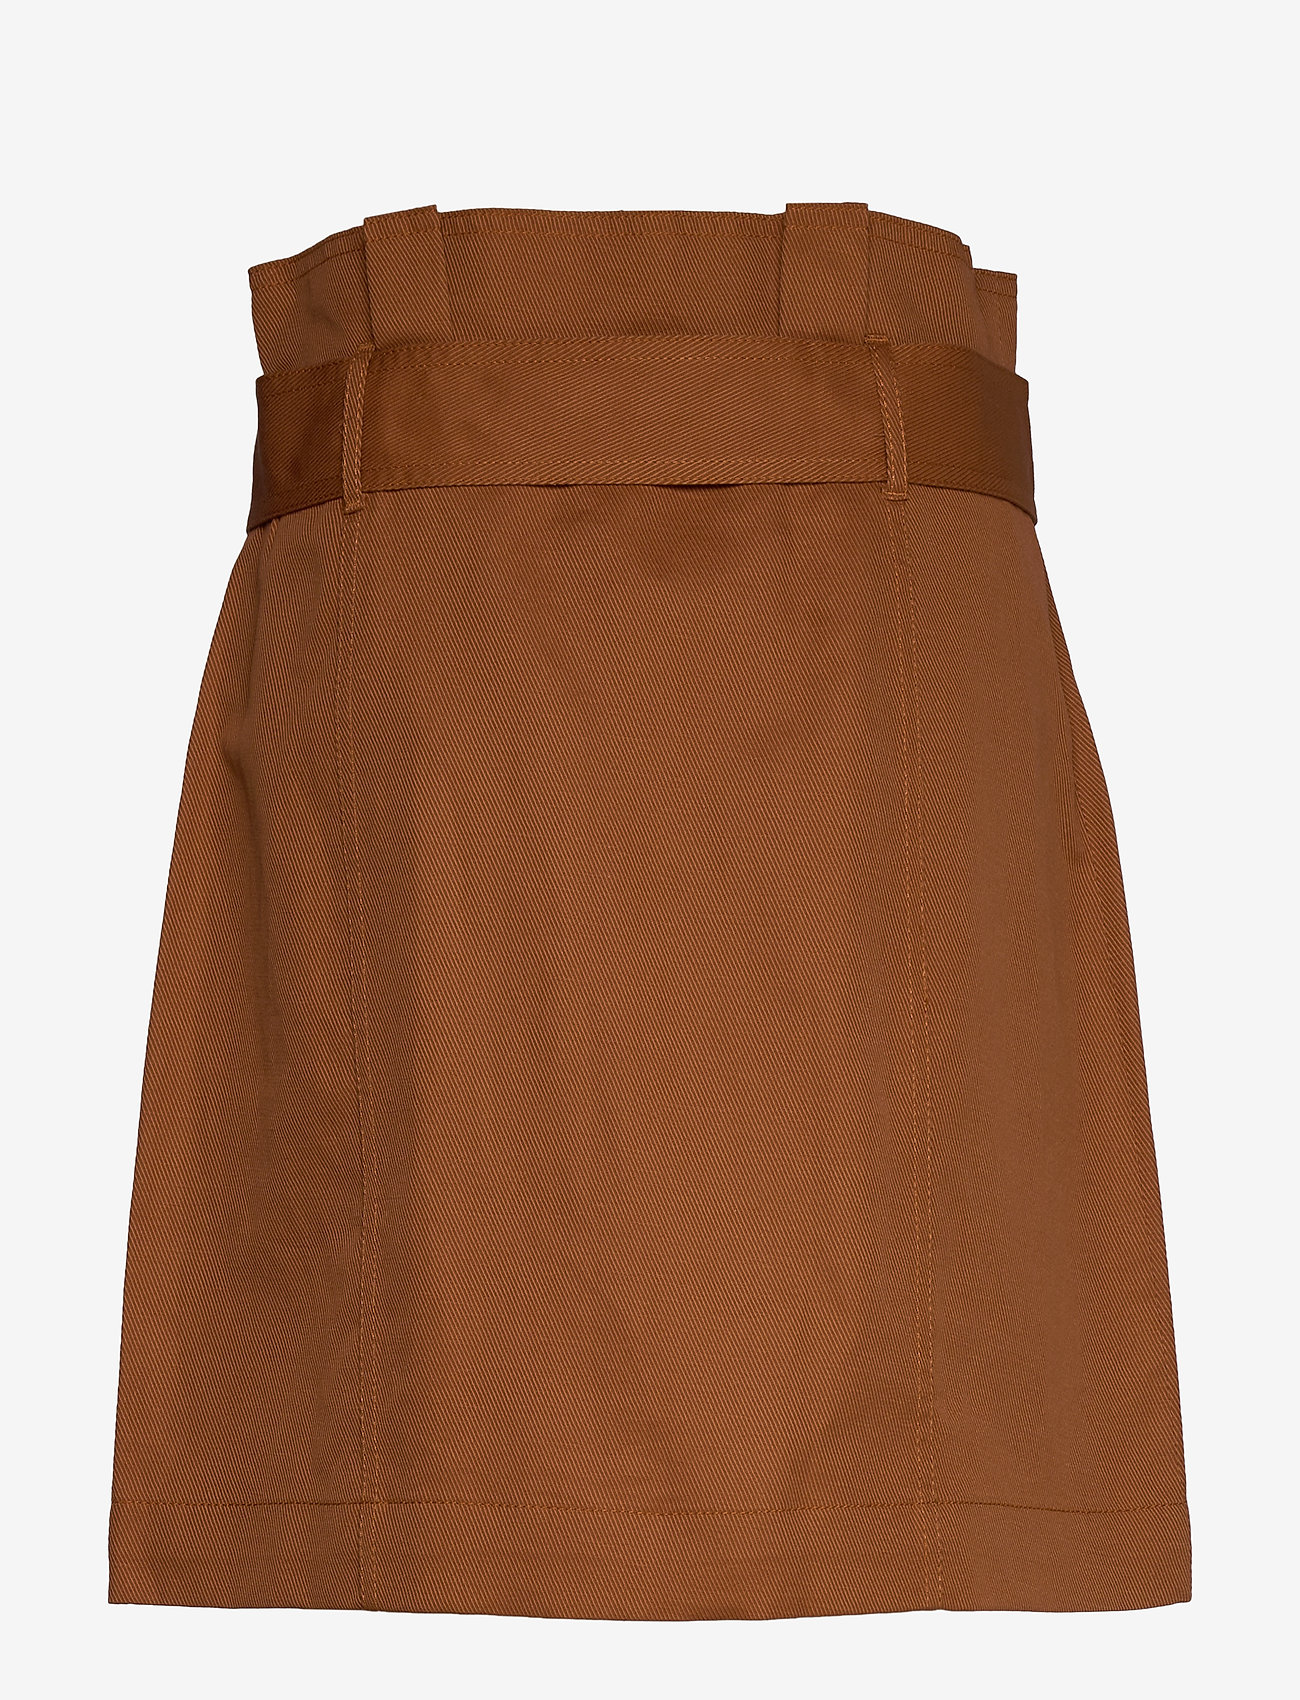 Banana Republic Paperbag Utility Skirt - Skirts